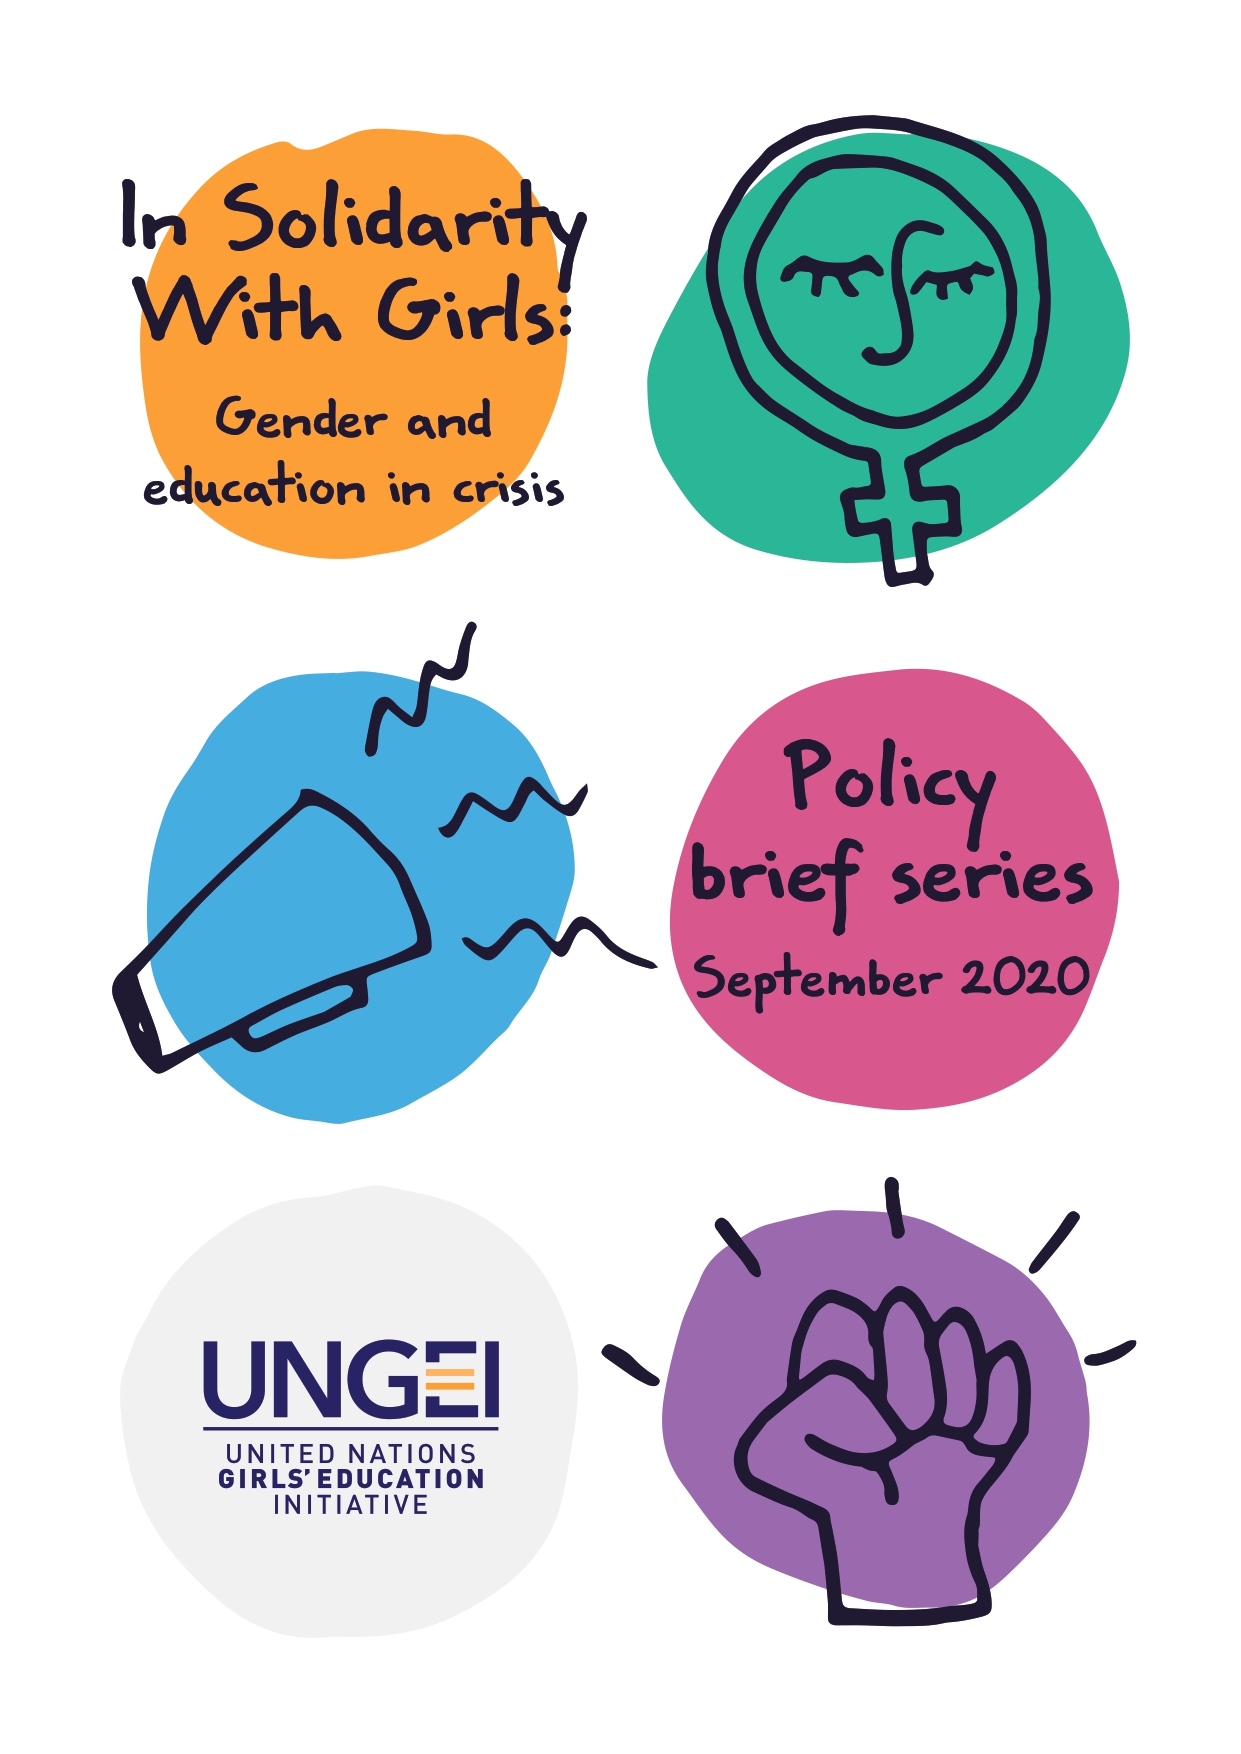 In Solidarity With Girls: Gender and education in crisis